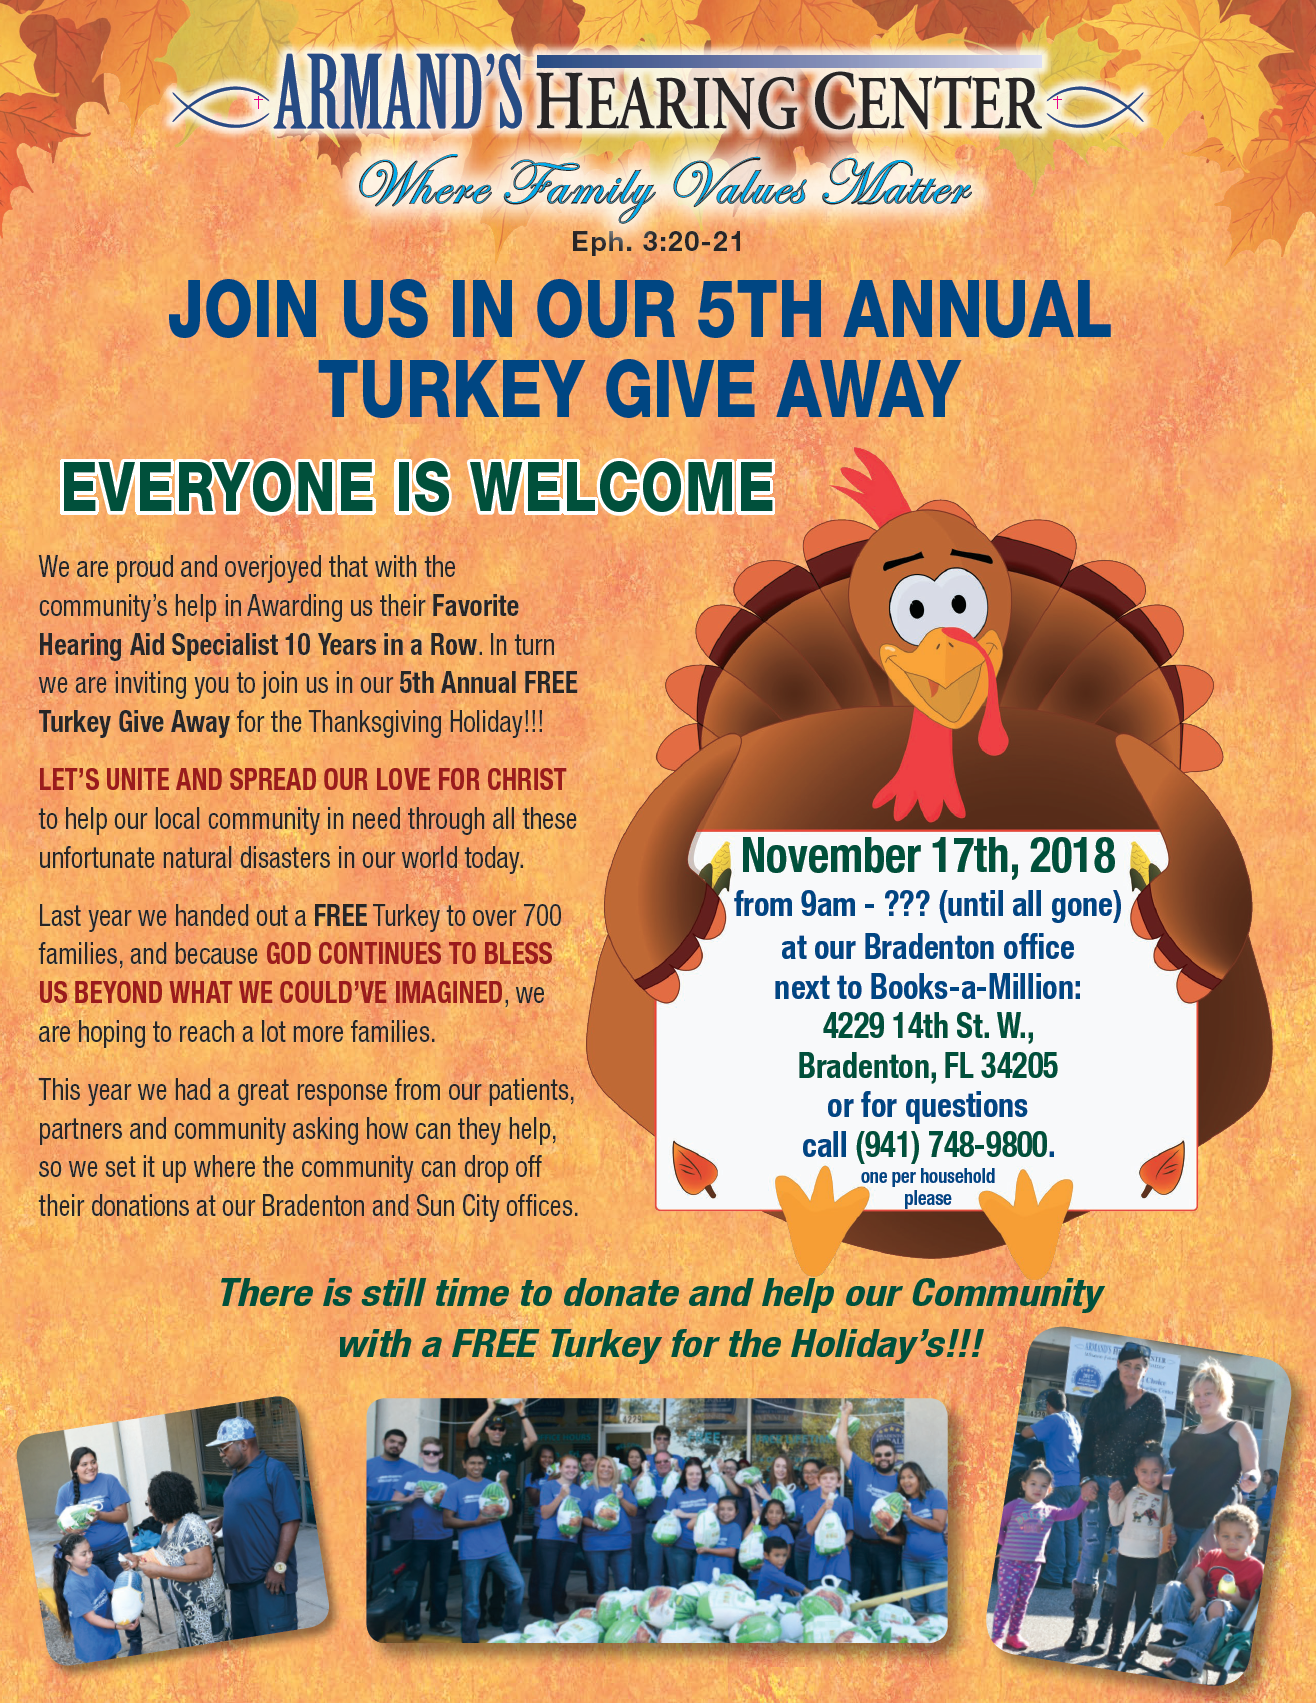 5th ANNUAL TURKEY GIVE AWAY - ARMAND'S HEARING CENTER.png